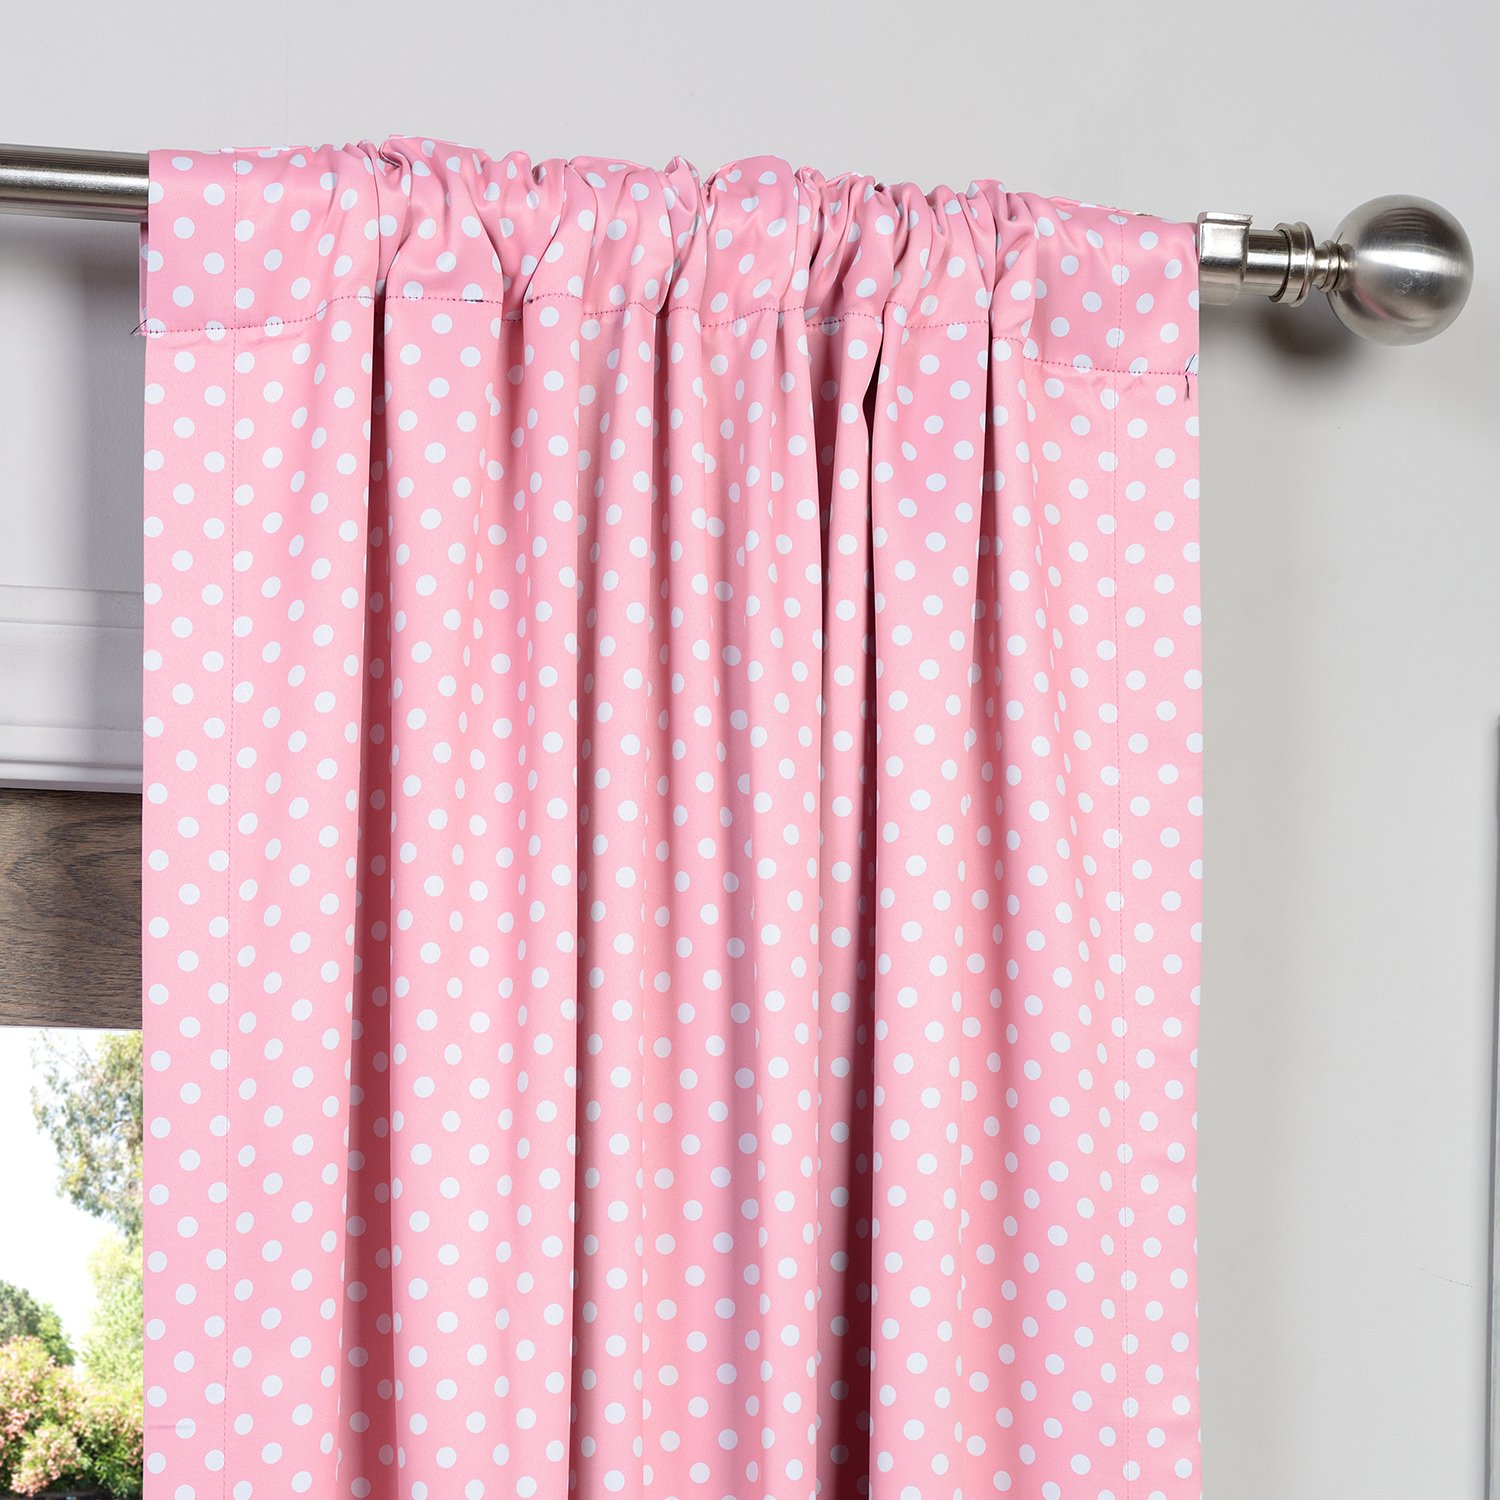 Amazon.com: Half Price Drapes BOCH KC91B 84 Blackout Curtain, Pink Polka Dot:  Home U0026 Kitchen